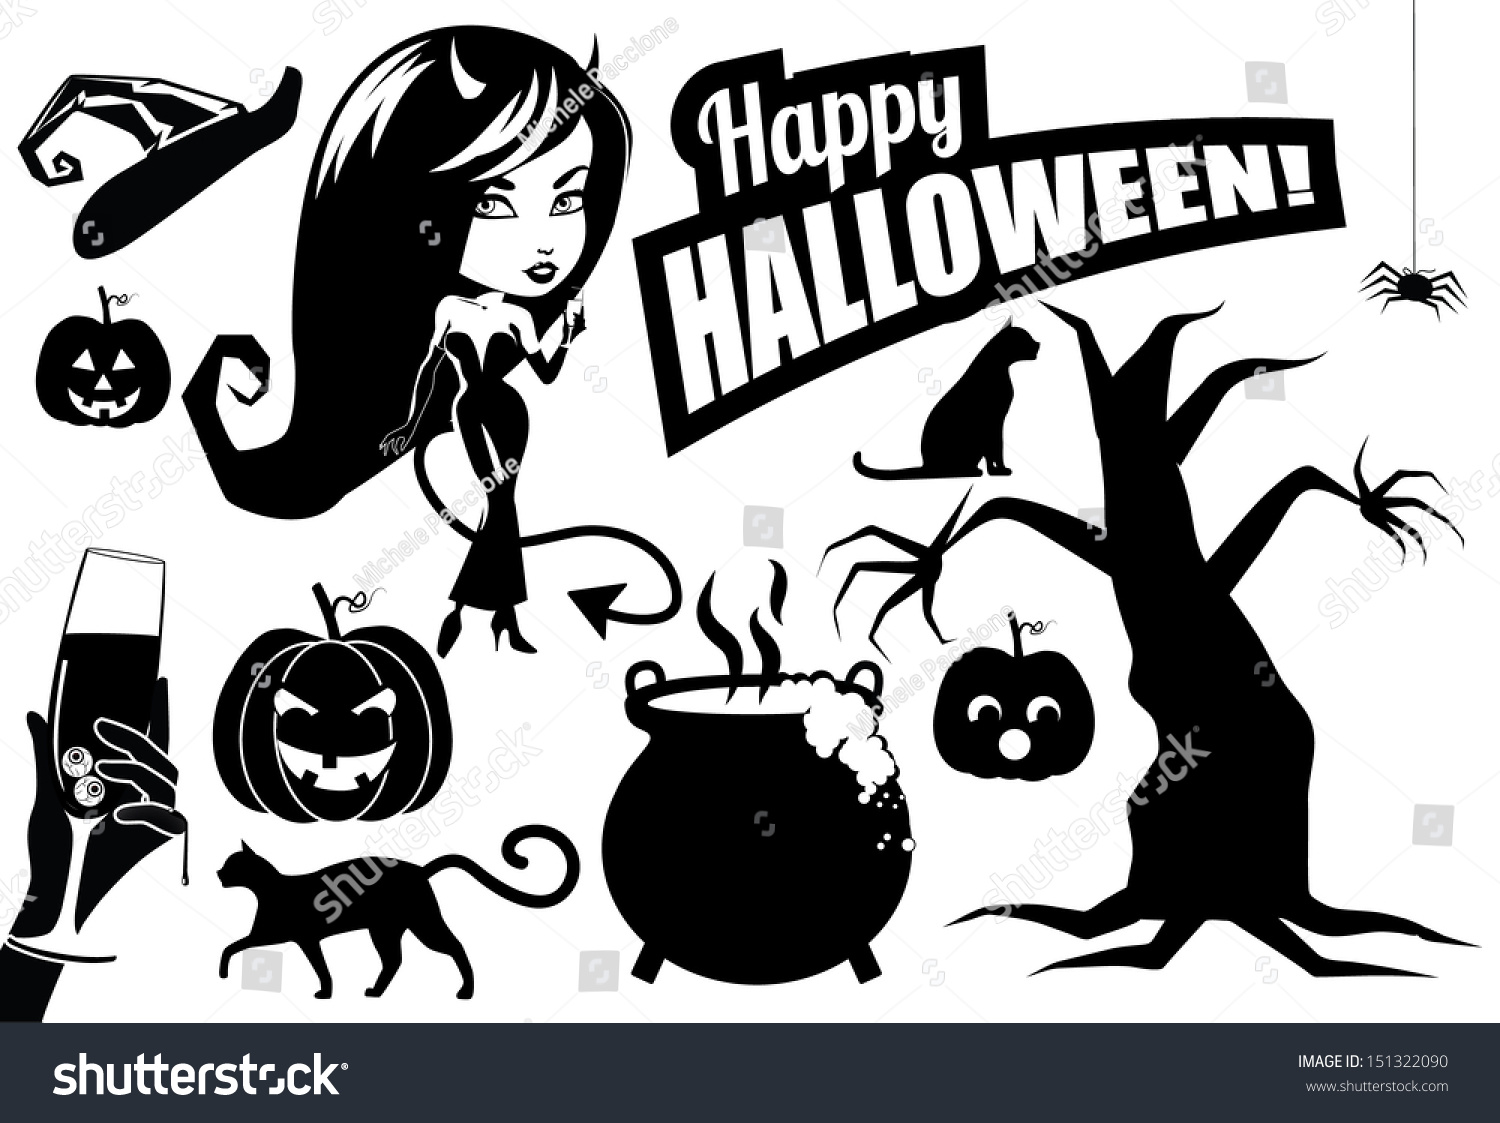 Halloween Silhouettes Collection Eps 10 Vector Stock